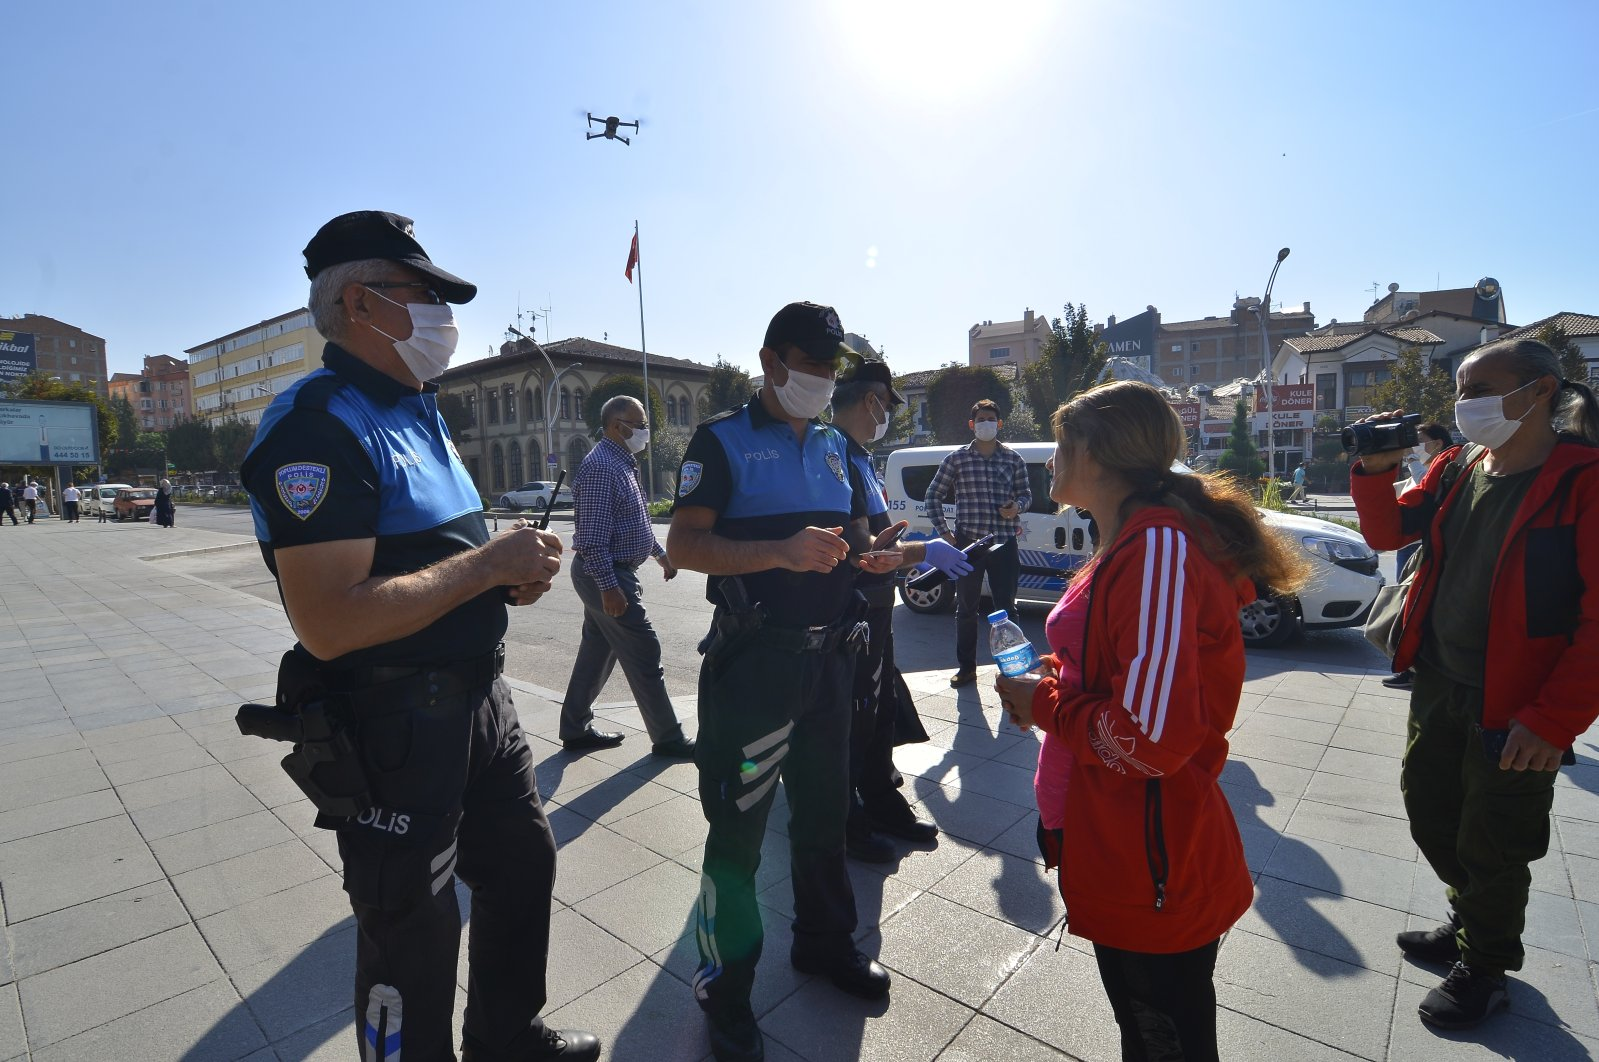 Police officers fine a woman for not wearing a mask in a public place, in Çorum, Turkey's central Black Sea region, Oct. 16, 2020. (AA Photo)